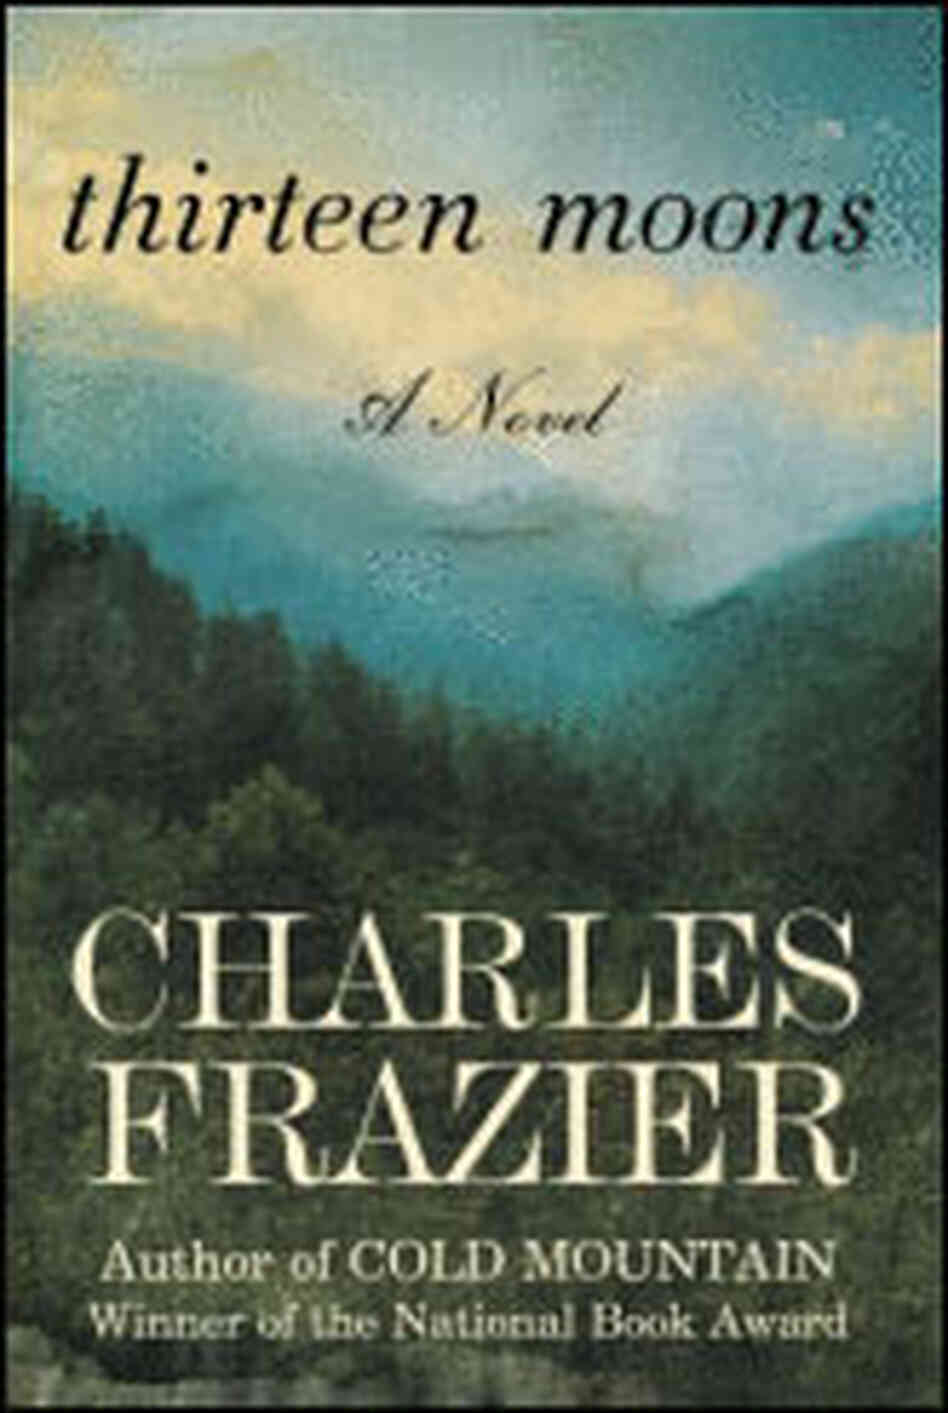 Cover of '13 Moons' by Charles Frazier